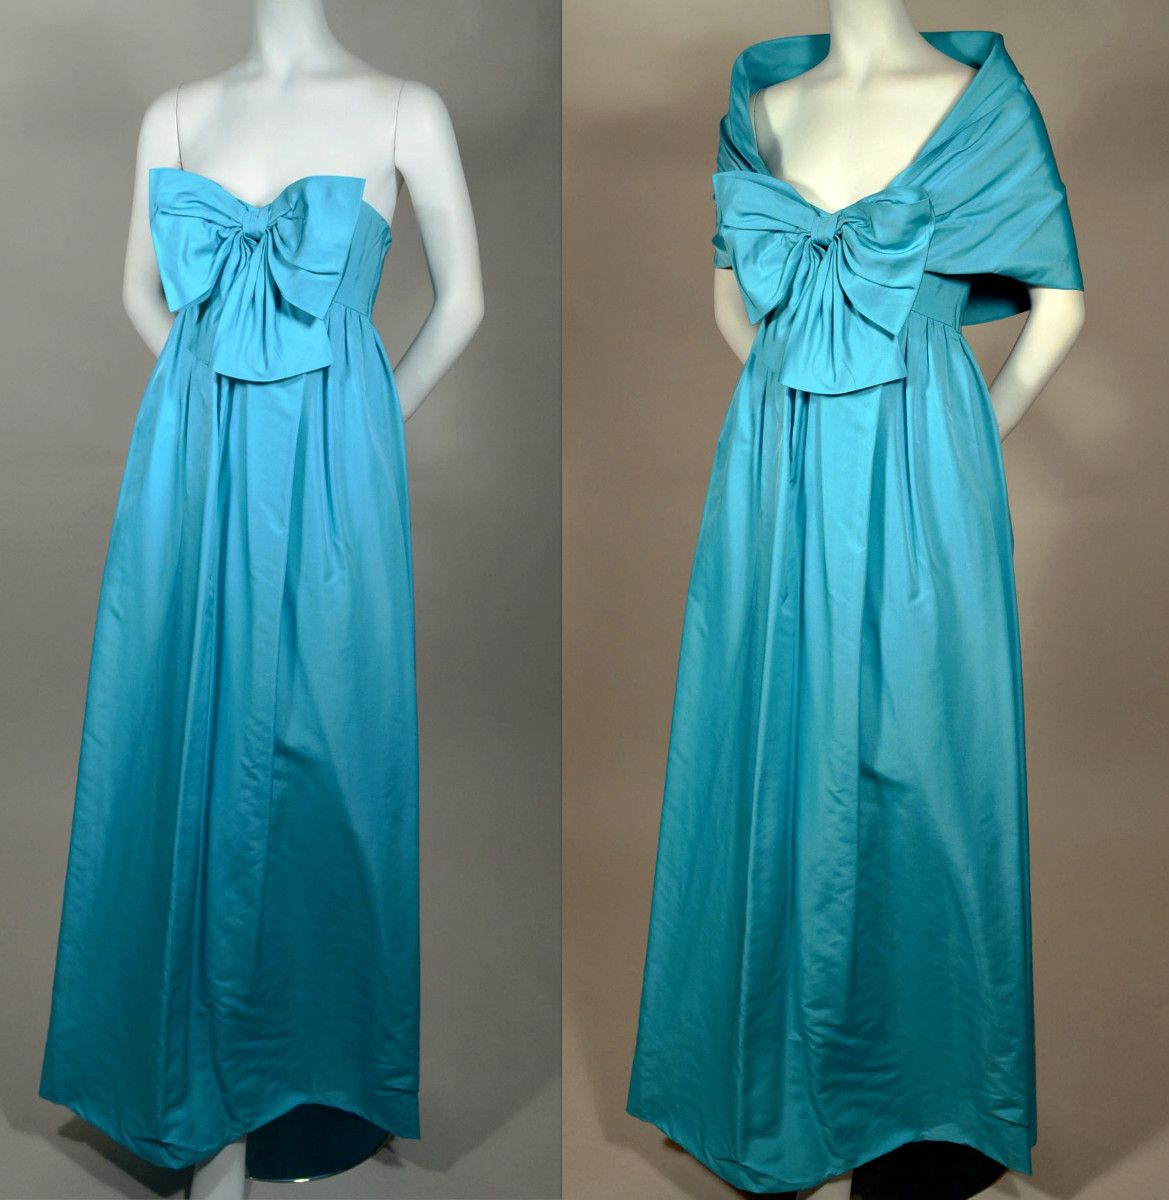 STRAPLESS EMPIRE GOWN TWO PIECE 1960's VINTAGE GOWN WITH